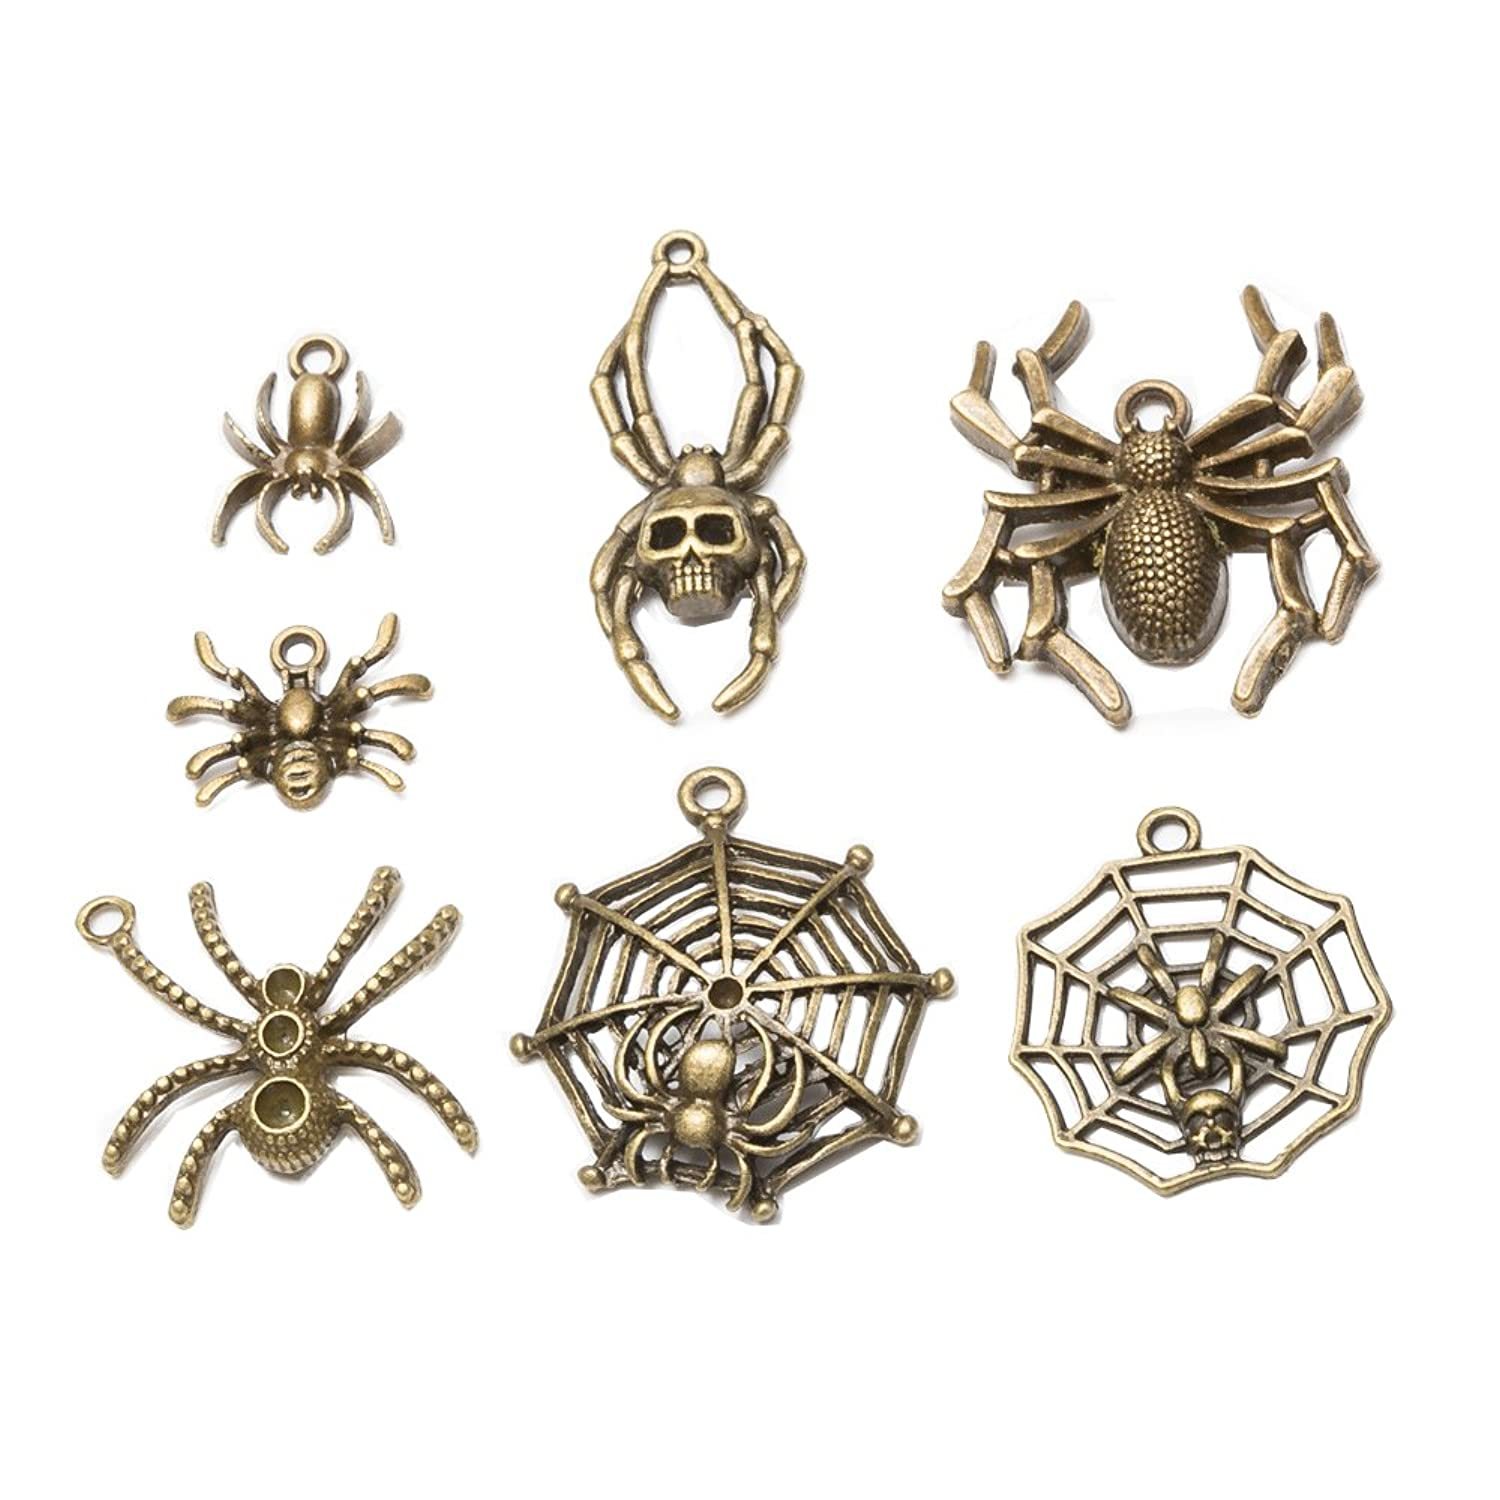 14 pcs Mixed Antique Bronze Plated Zinc Alloy Metal Charms Spider Pendants for DIY Jewelry Making Findings(14pcs-Spider)